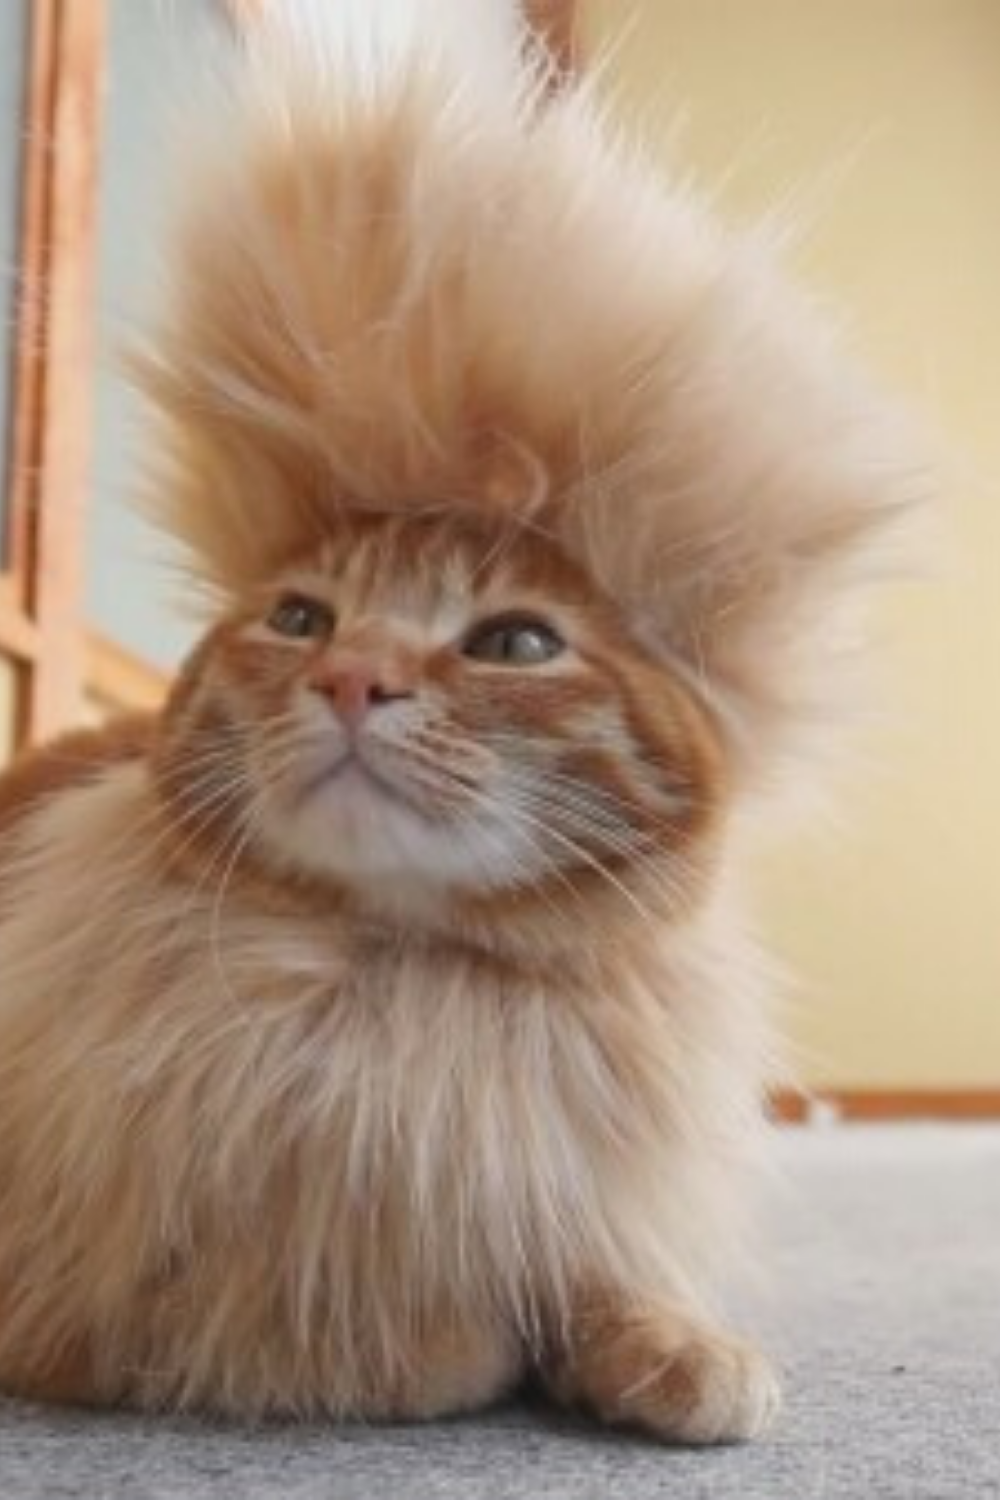 20 Cats With Hilarious Hair Styles In 2020 Cats Cat Haircut Cute Cats